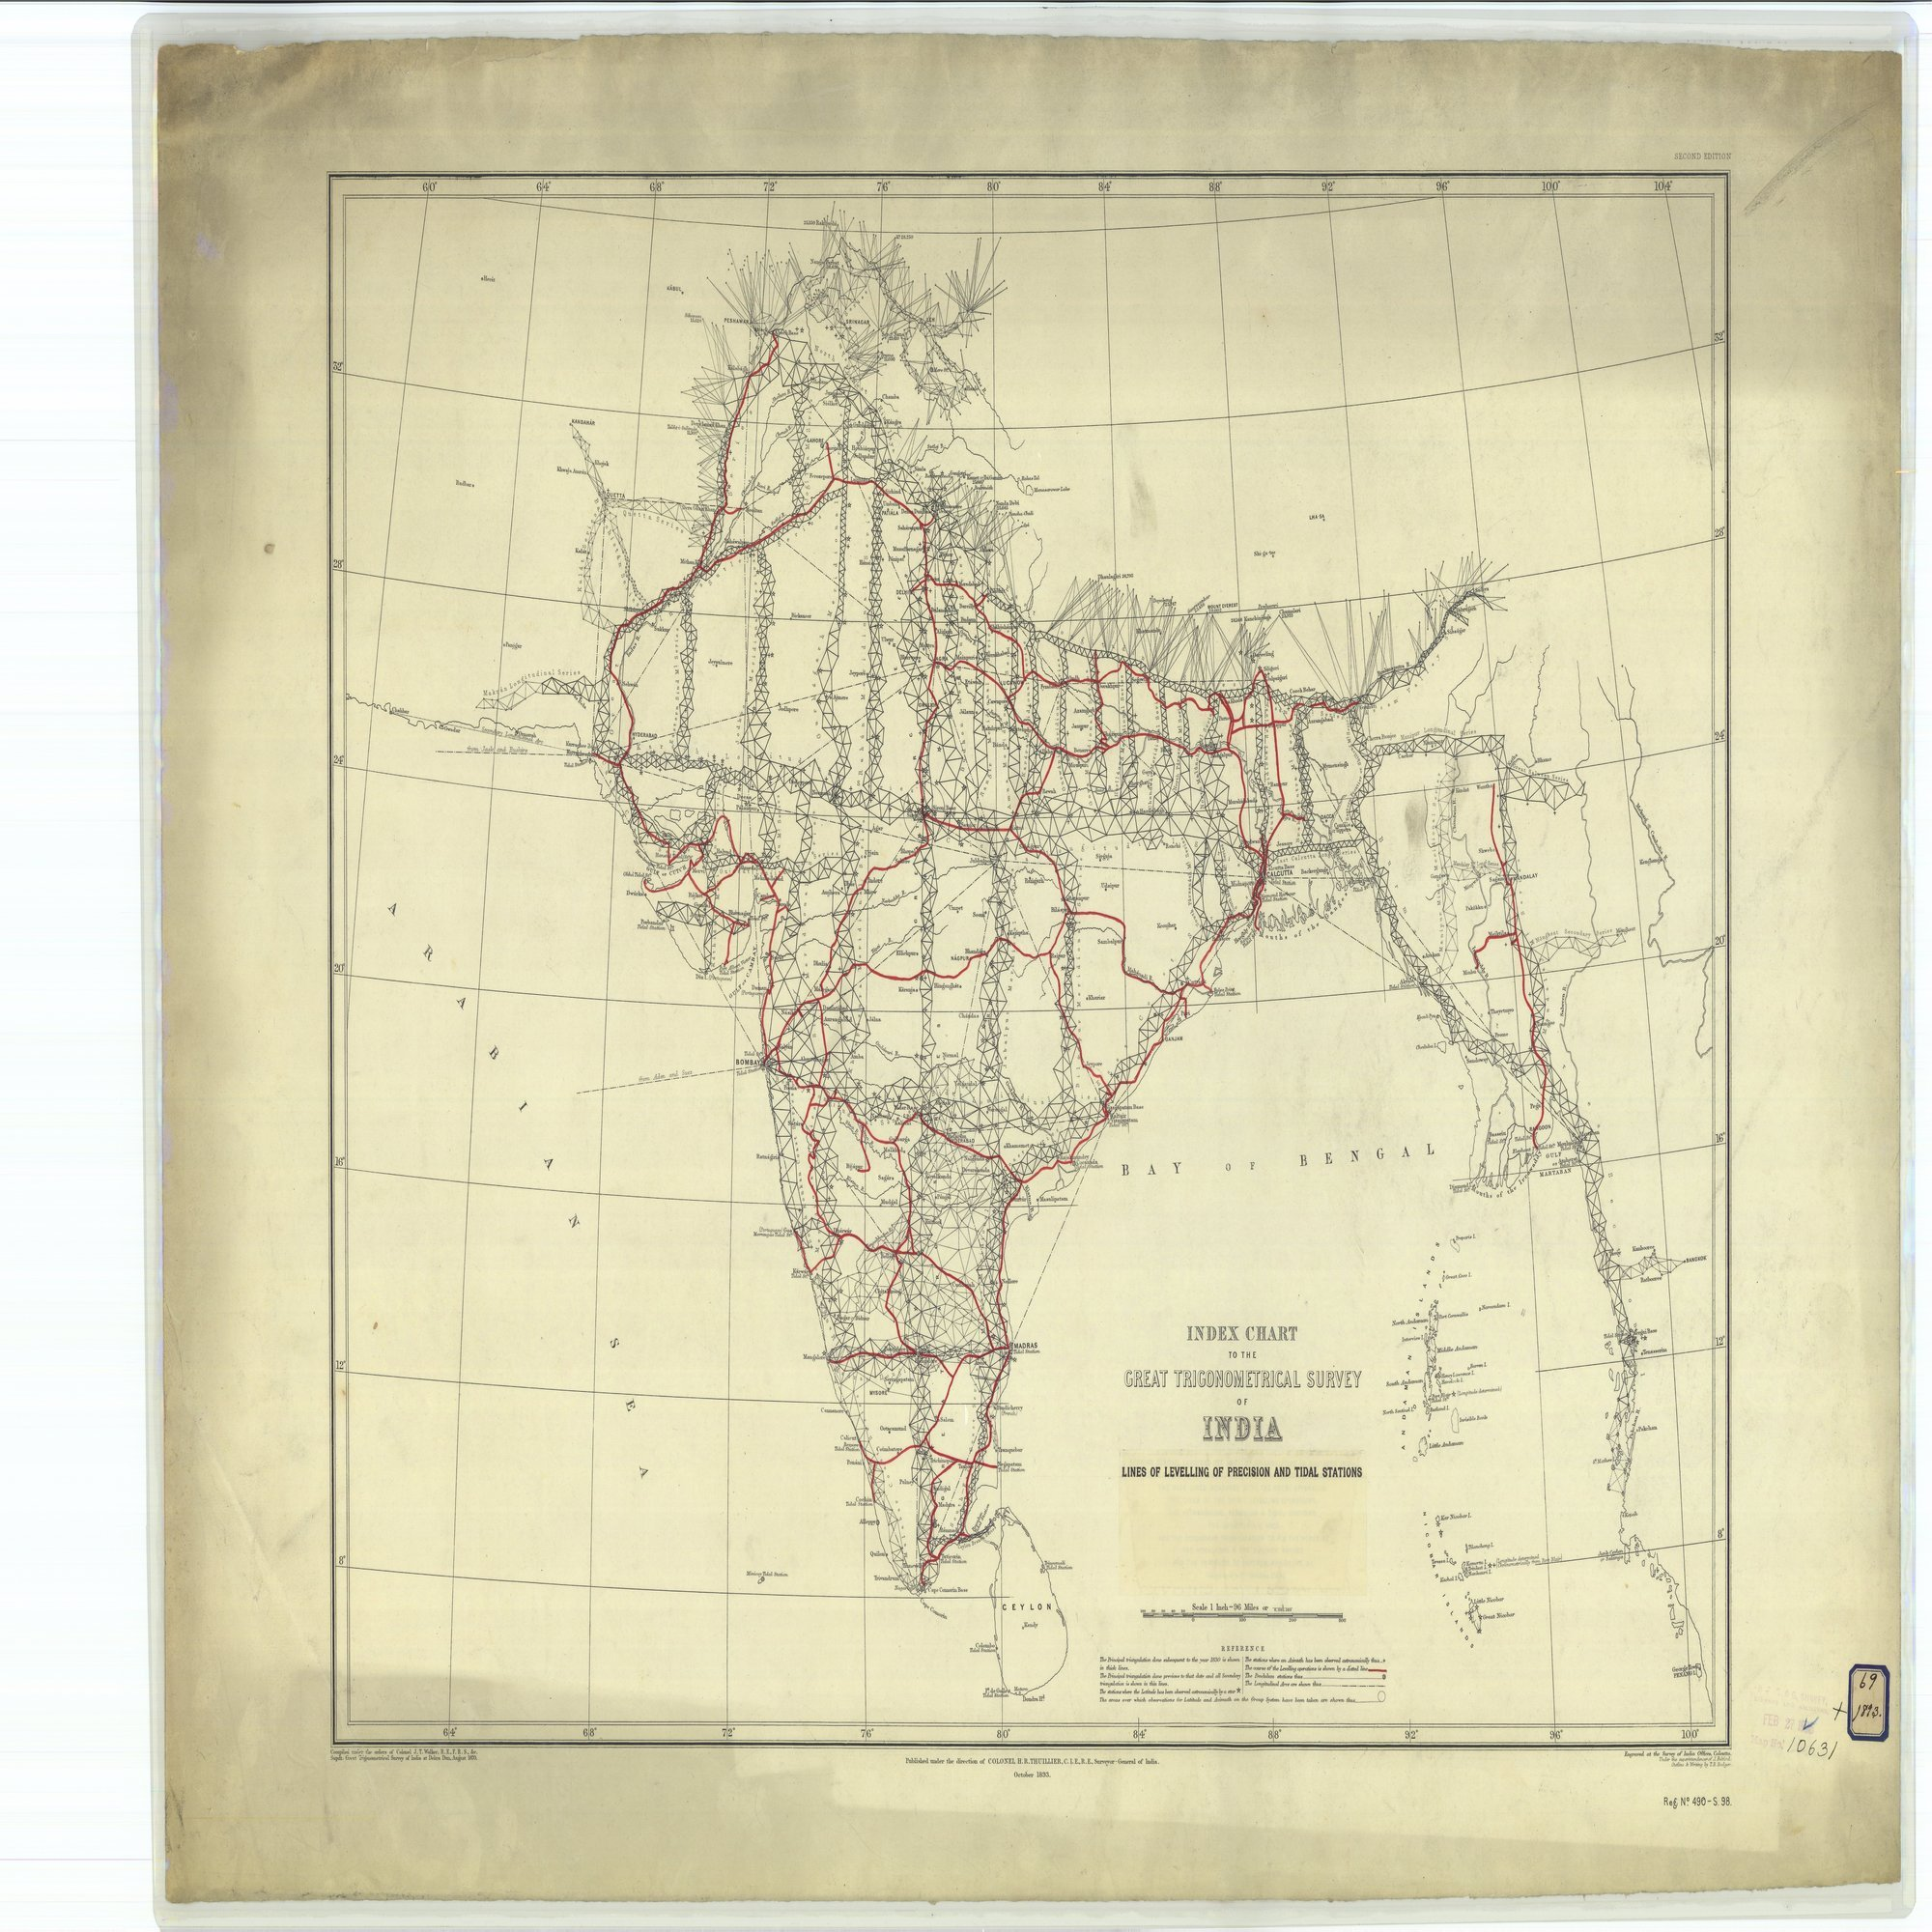 16 x 20 Glossy Nautical Map Printed on Metal Index Chart to the Great Trigonometrical Survey of India Lines of Levelling of Precision and Tidal Stations 1893 NOAA 23a